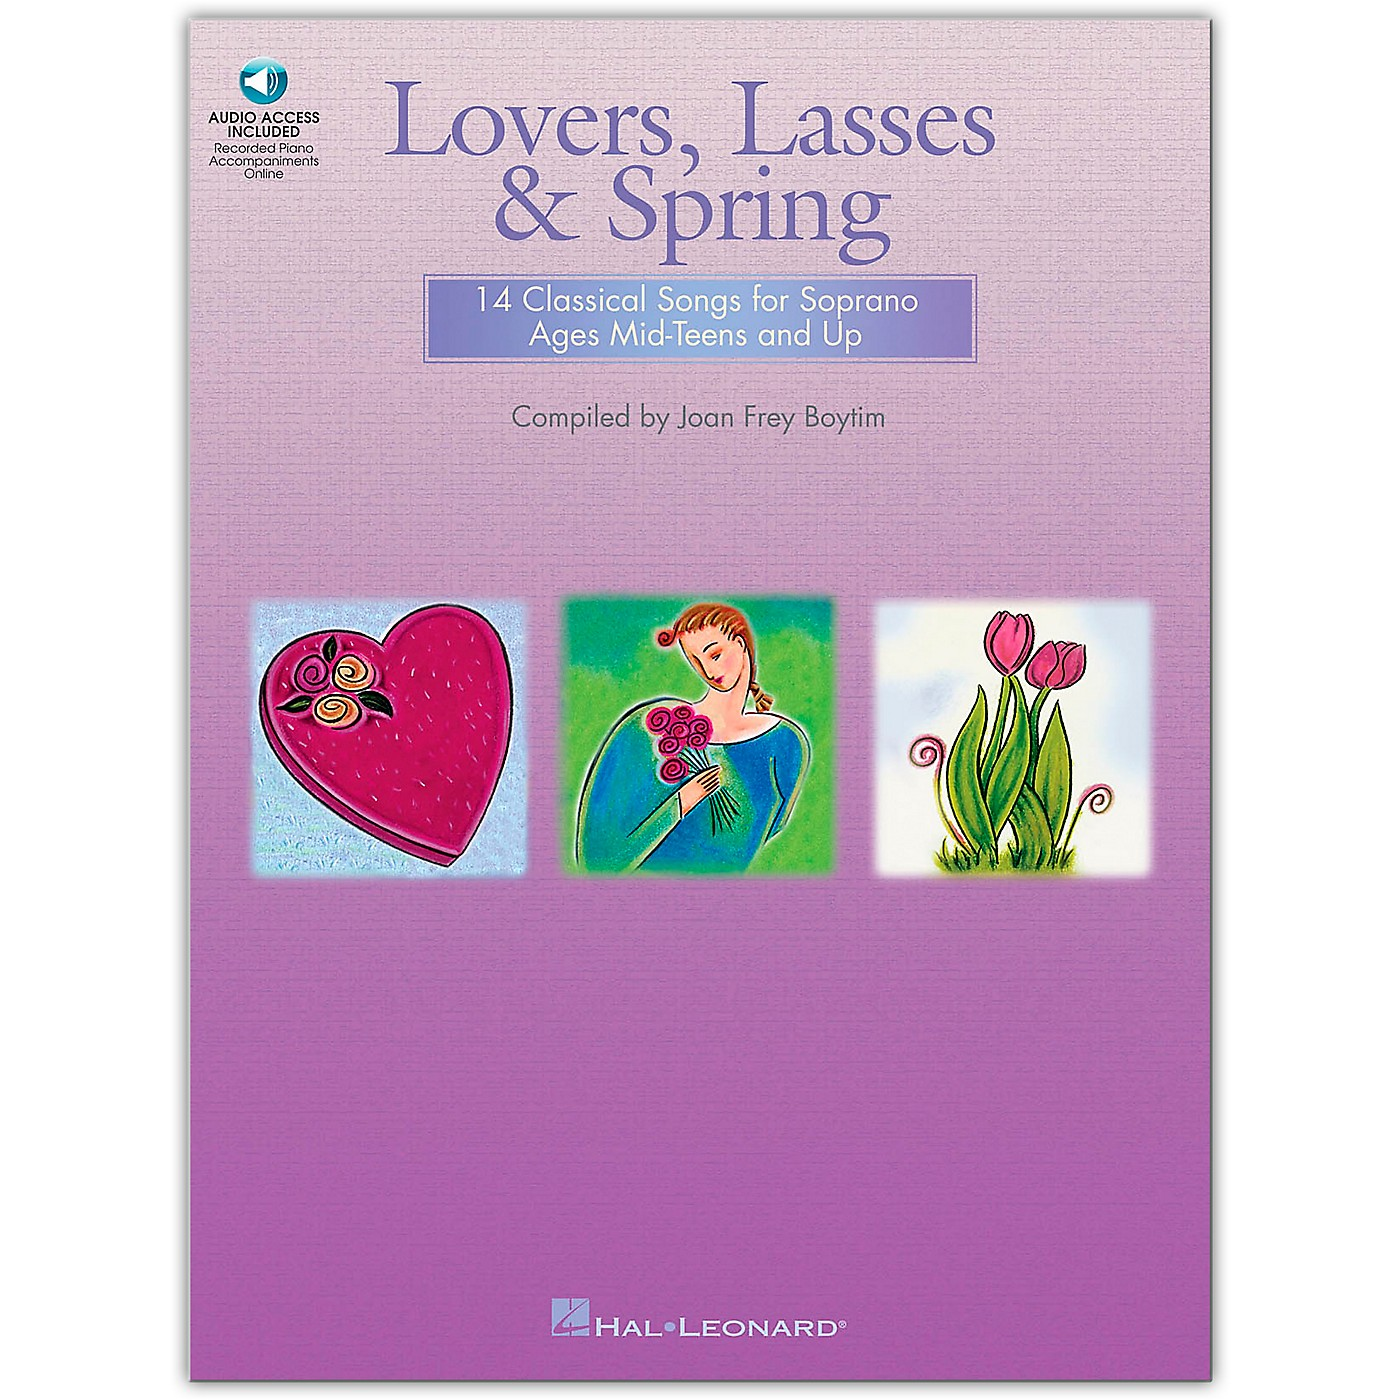 Hal Leonard Lovers, Lasses And Spring: 14 Classical Songs for Soprano Ages Mid-Teens & Up (Book/Online Audio) thumbnail